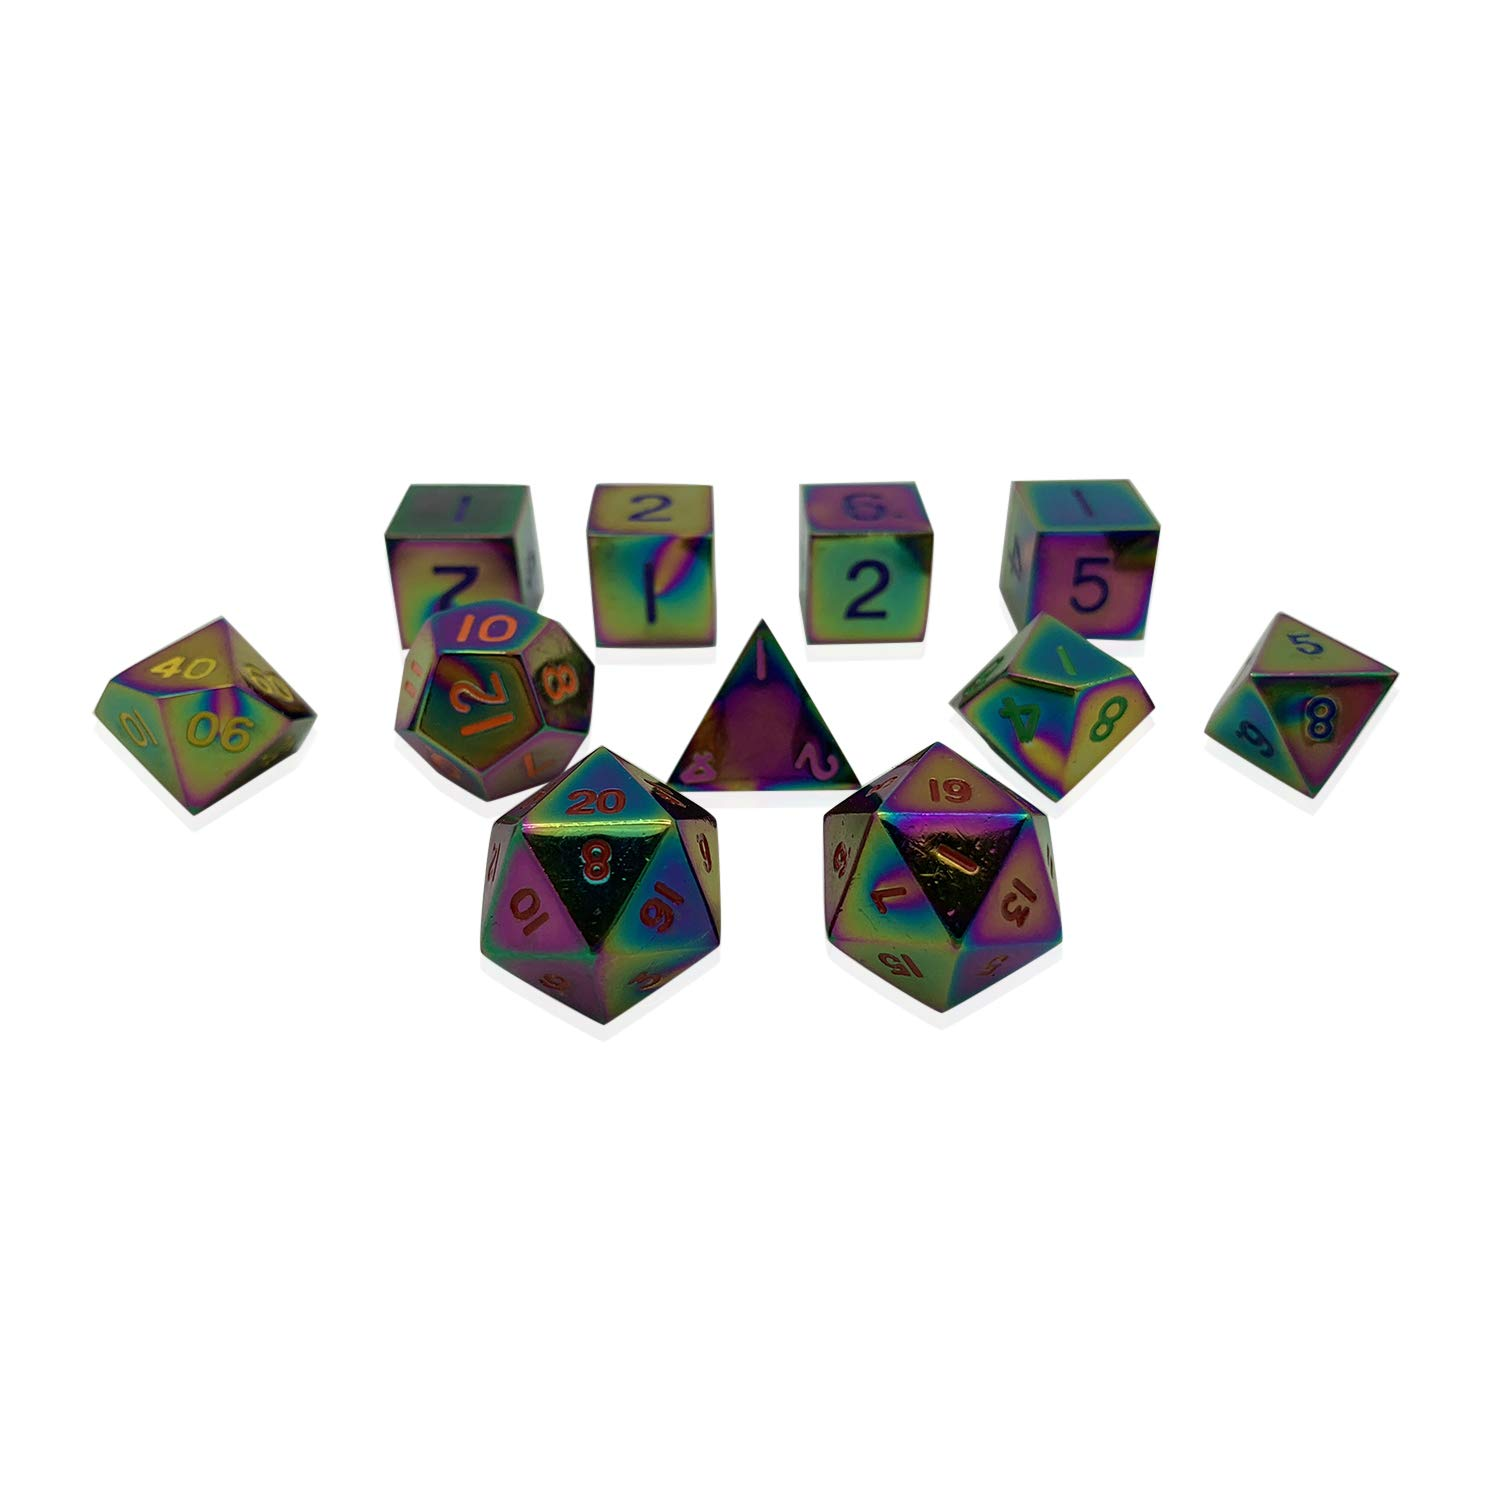 Rpg Math Games Dnd Pathfinder Set Of 11 Bifrost Thieves Pack Full Metal Polyhedral Dice By Norse Foundry Games Game Accessories By norse is a platform for norwegian art, music, literature, film and culture. monetariza solucoes financeiras empresariais